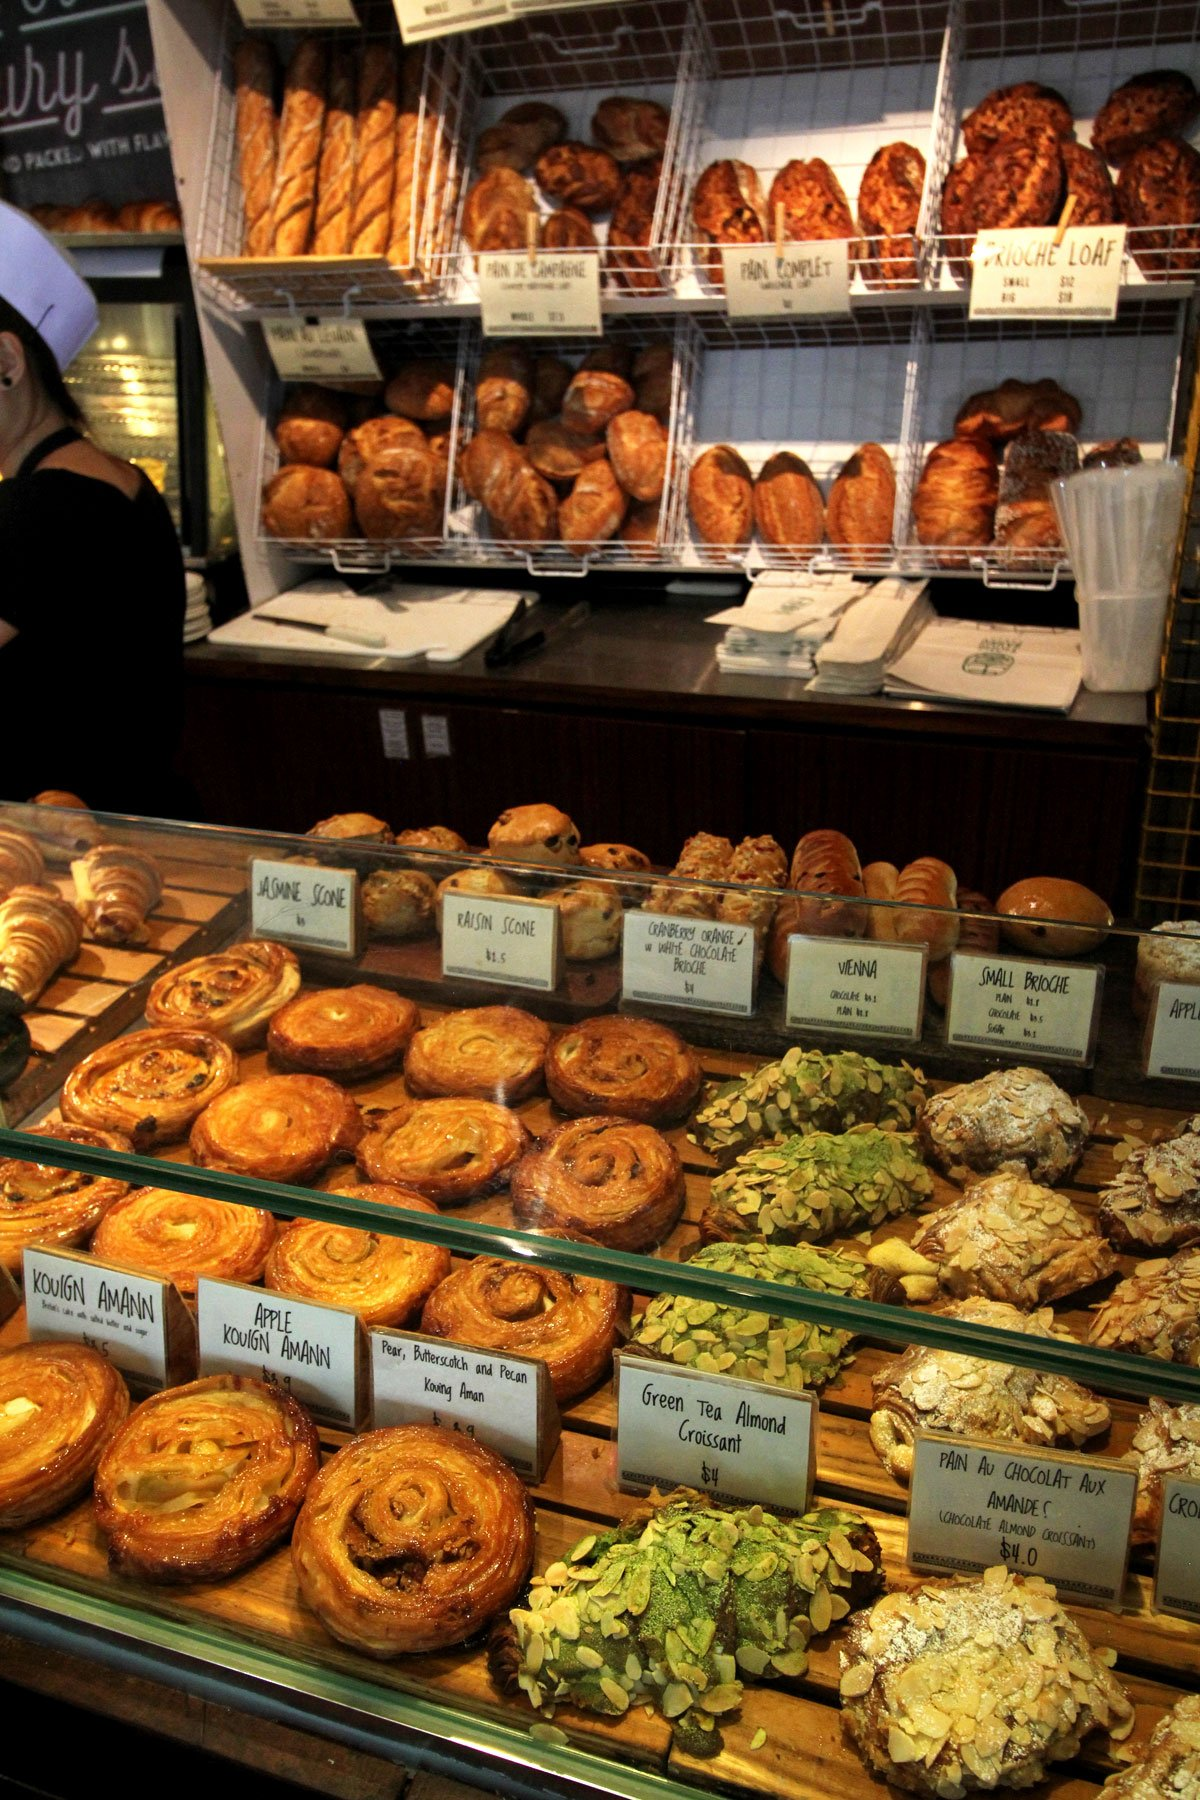 Croissants Better than Paris at Tiong Bahru Bakery in Singapore